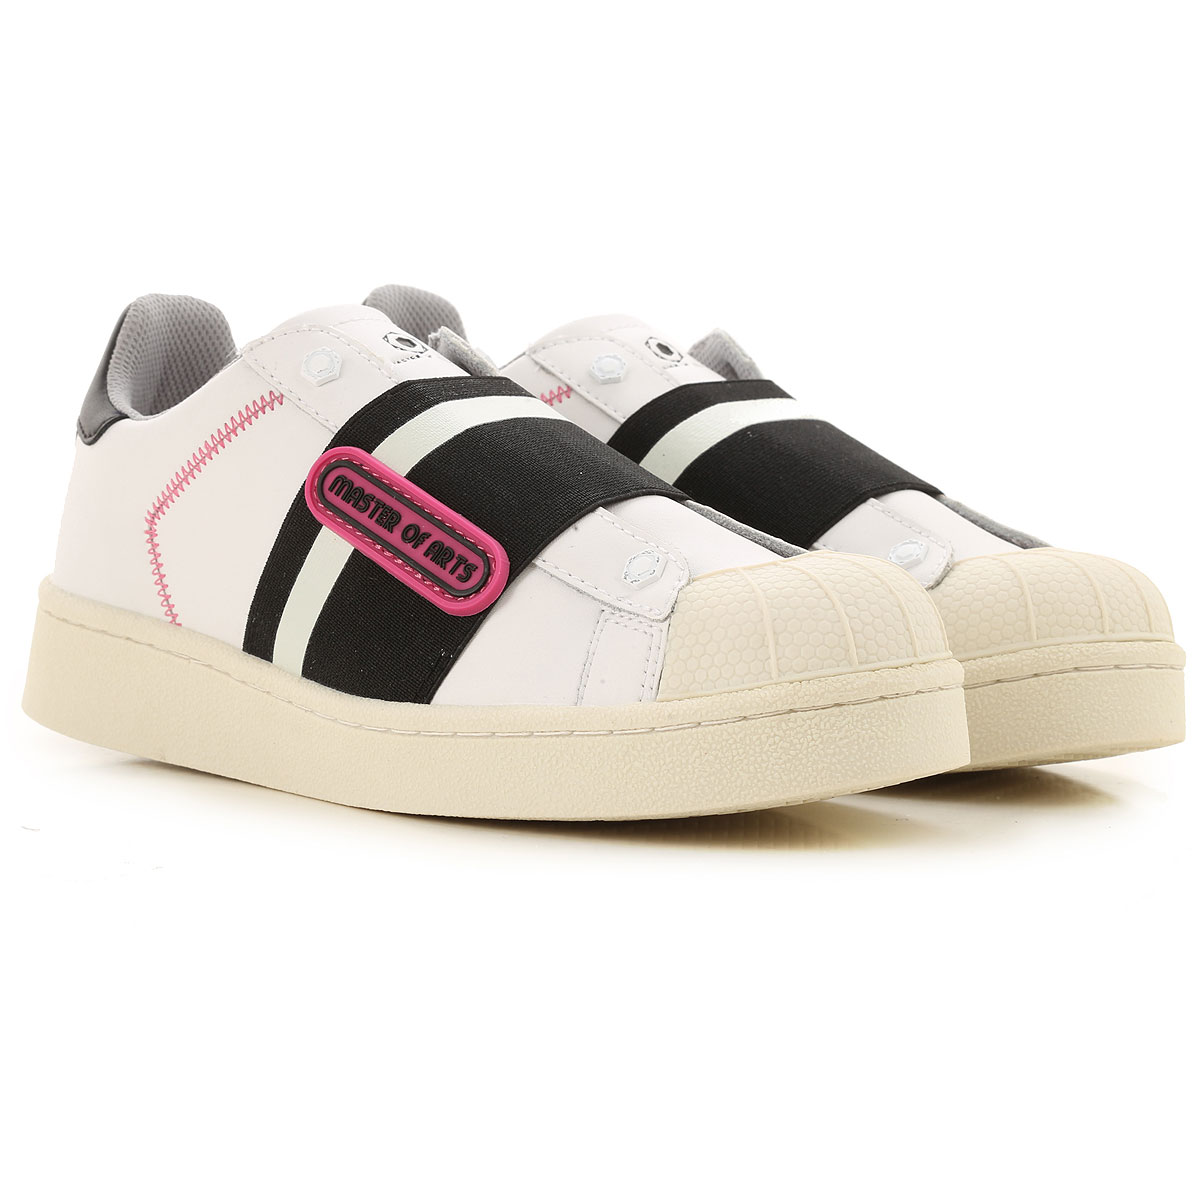 Moa Master of Arts Sneakers for Women, White, Leather, 2019, 11 6 7 9